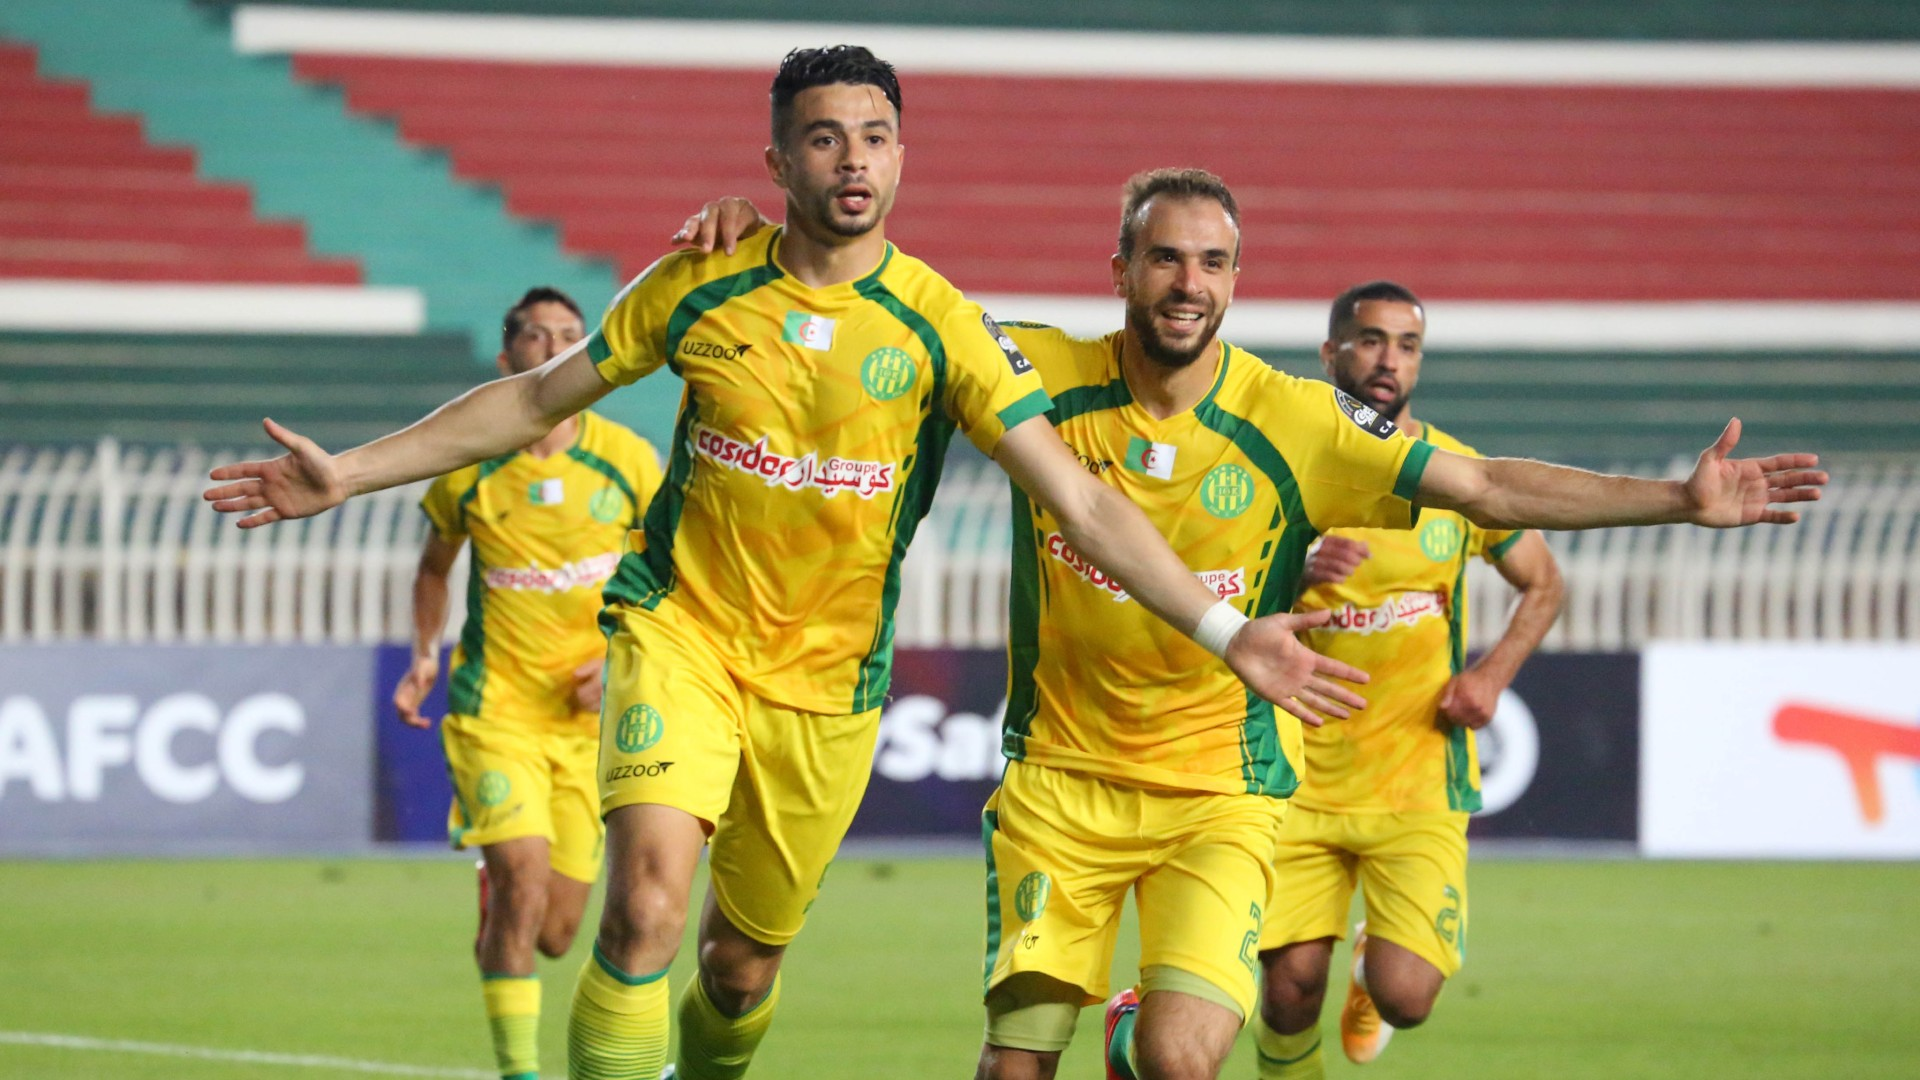 Caf Confederation Cup: JS Kayblie and Raja Casablanca qualify for final